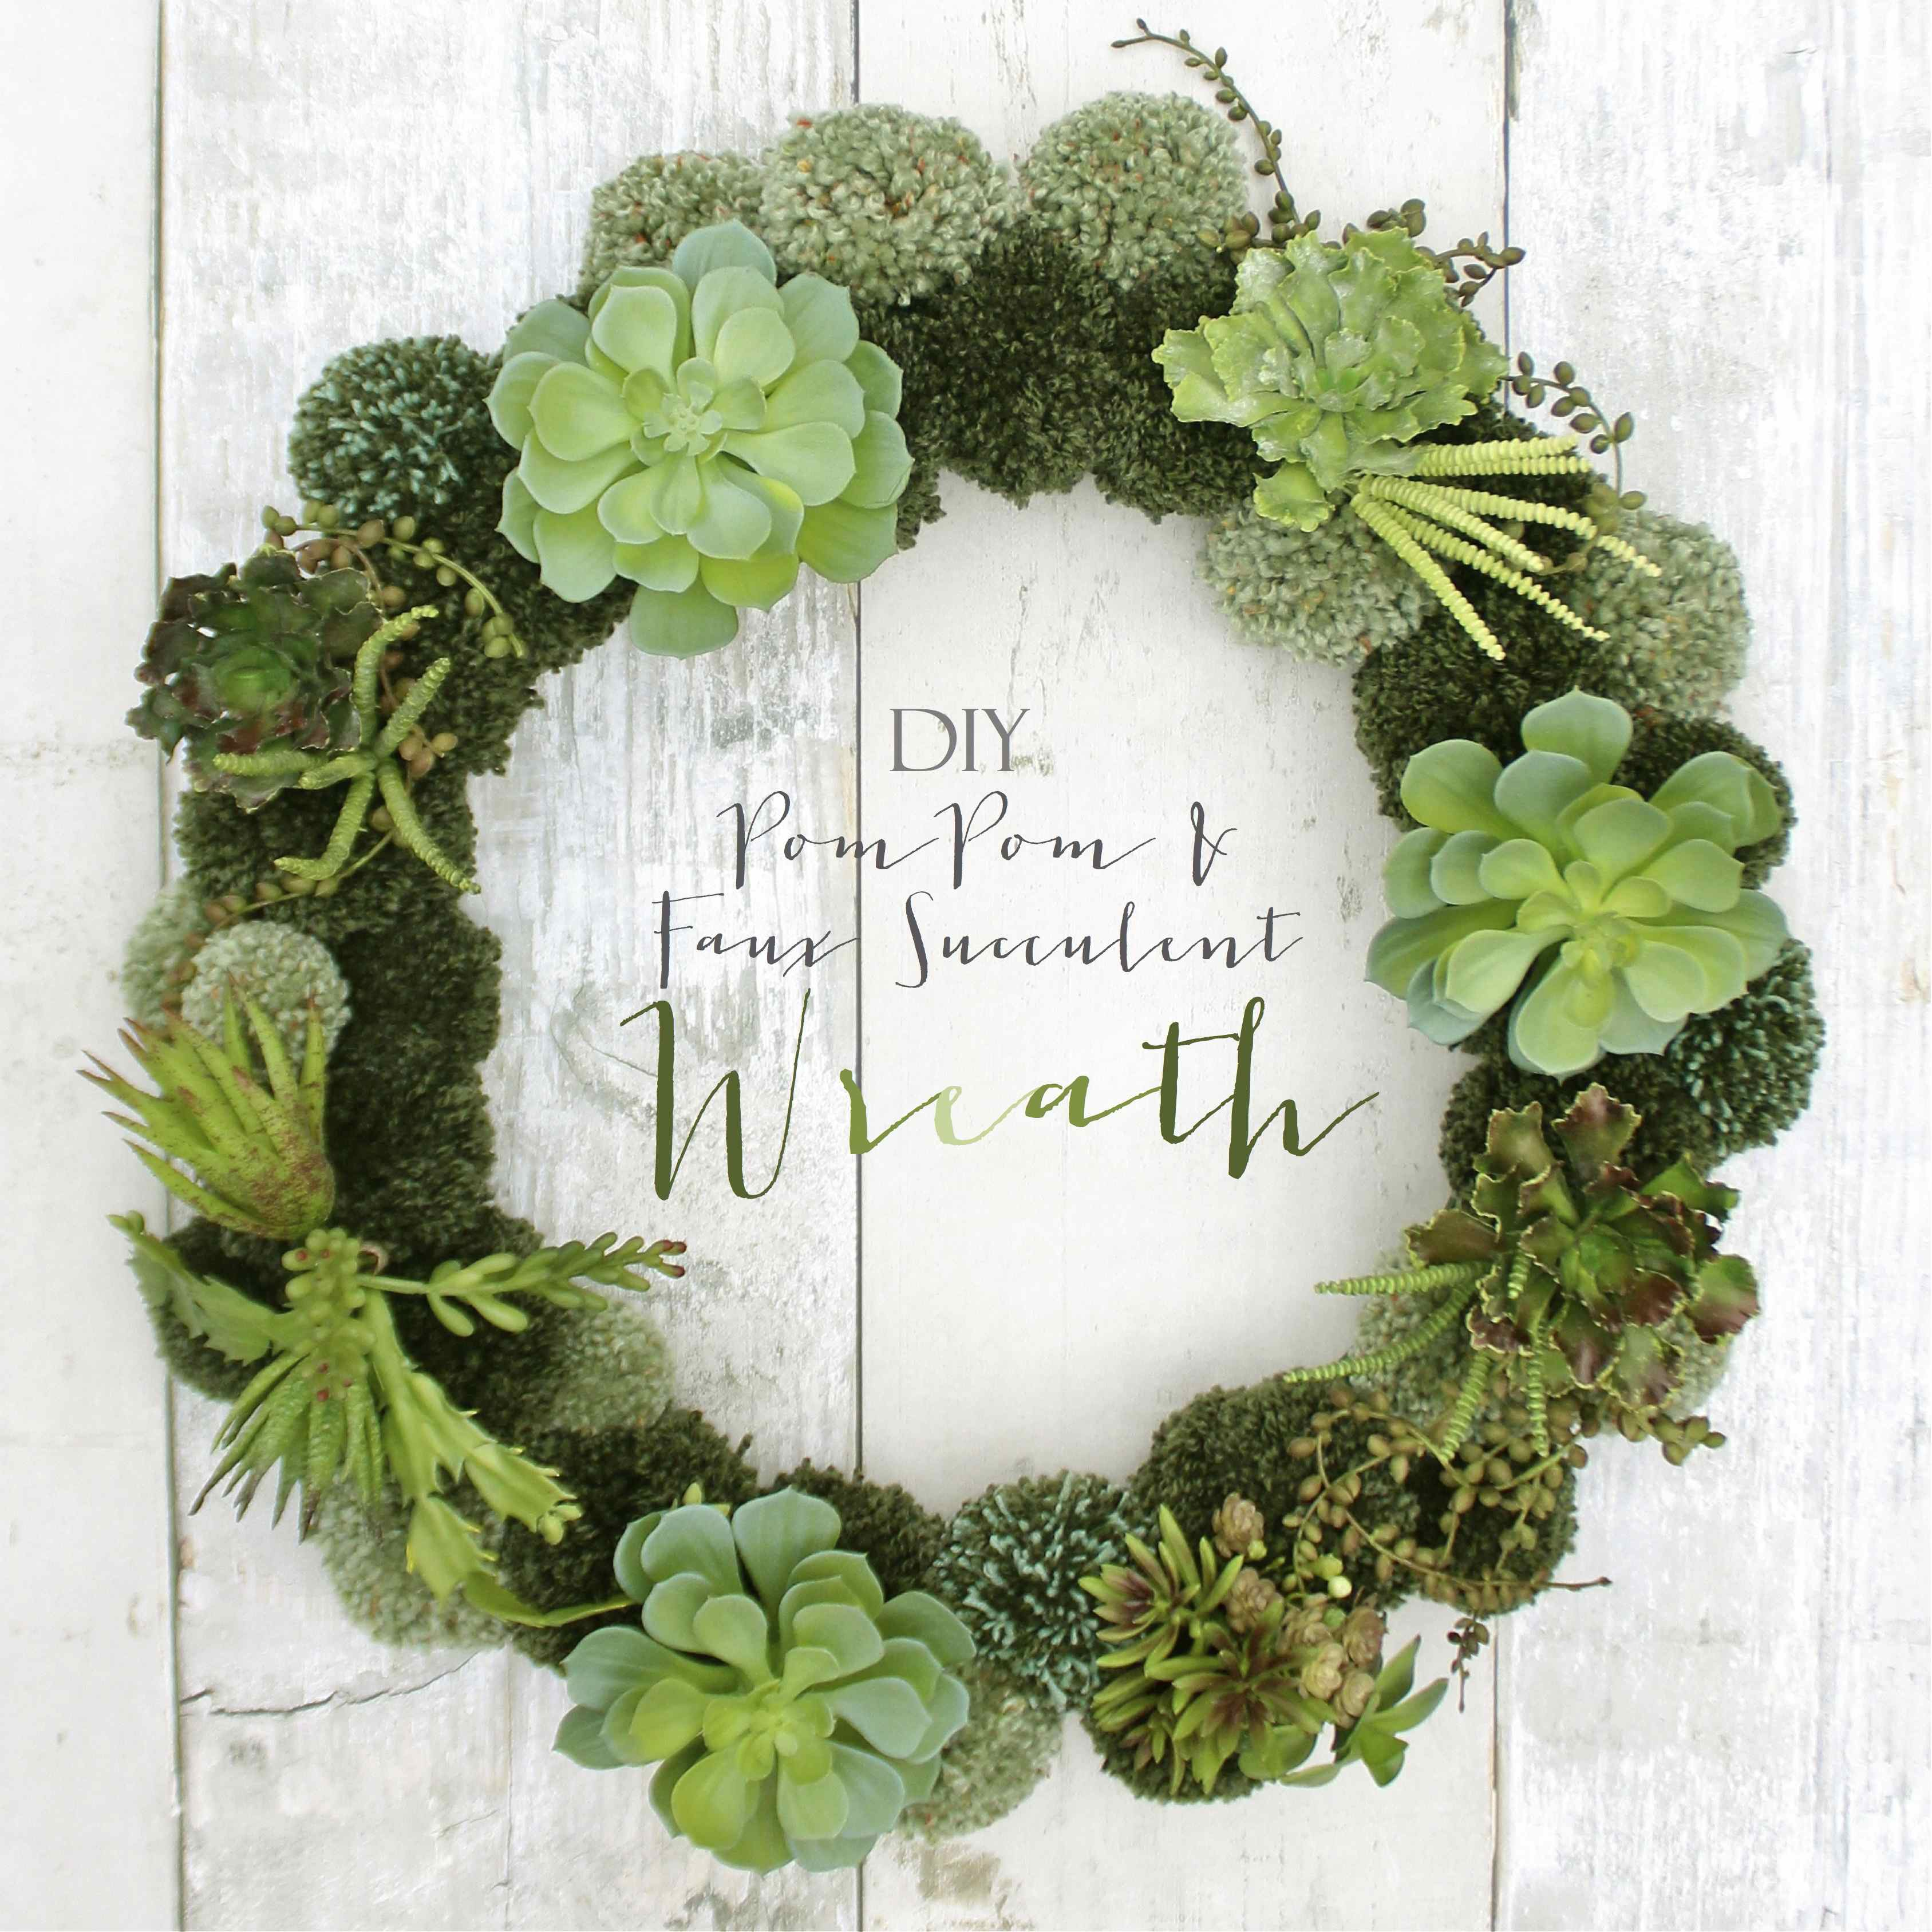 Diy Pom Pom And Faux Succulent Wreath